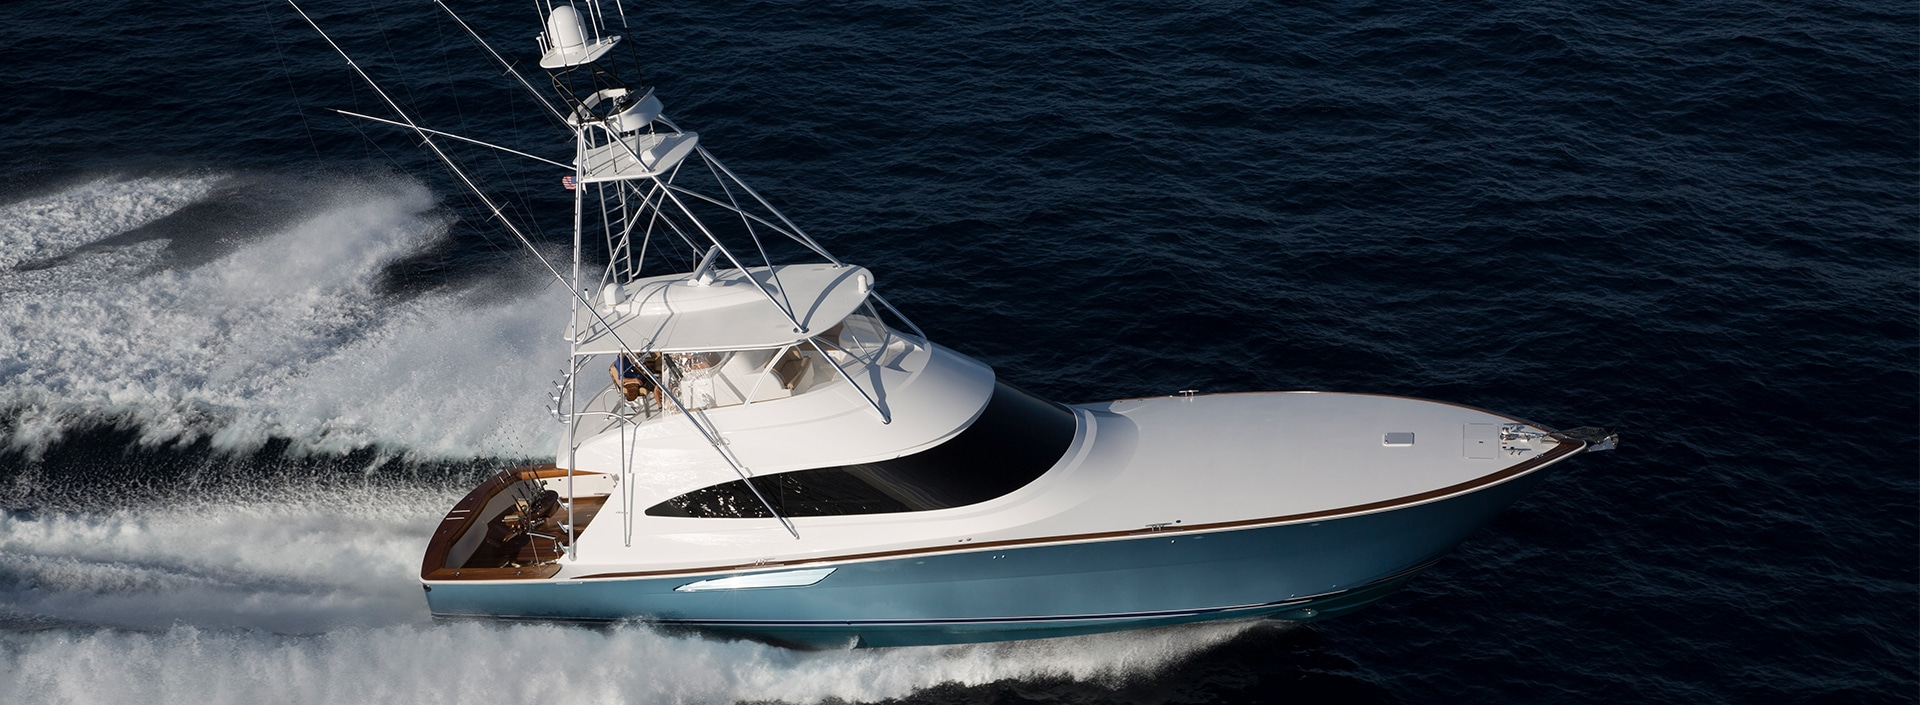 New Viking Yachts for Sale